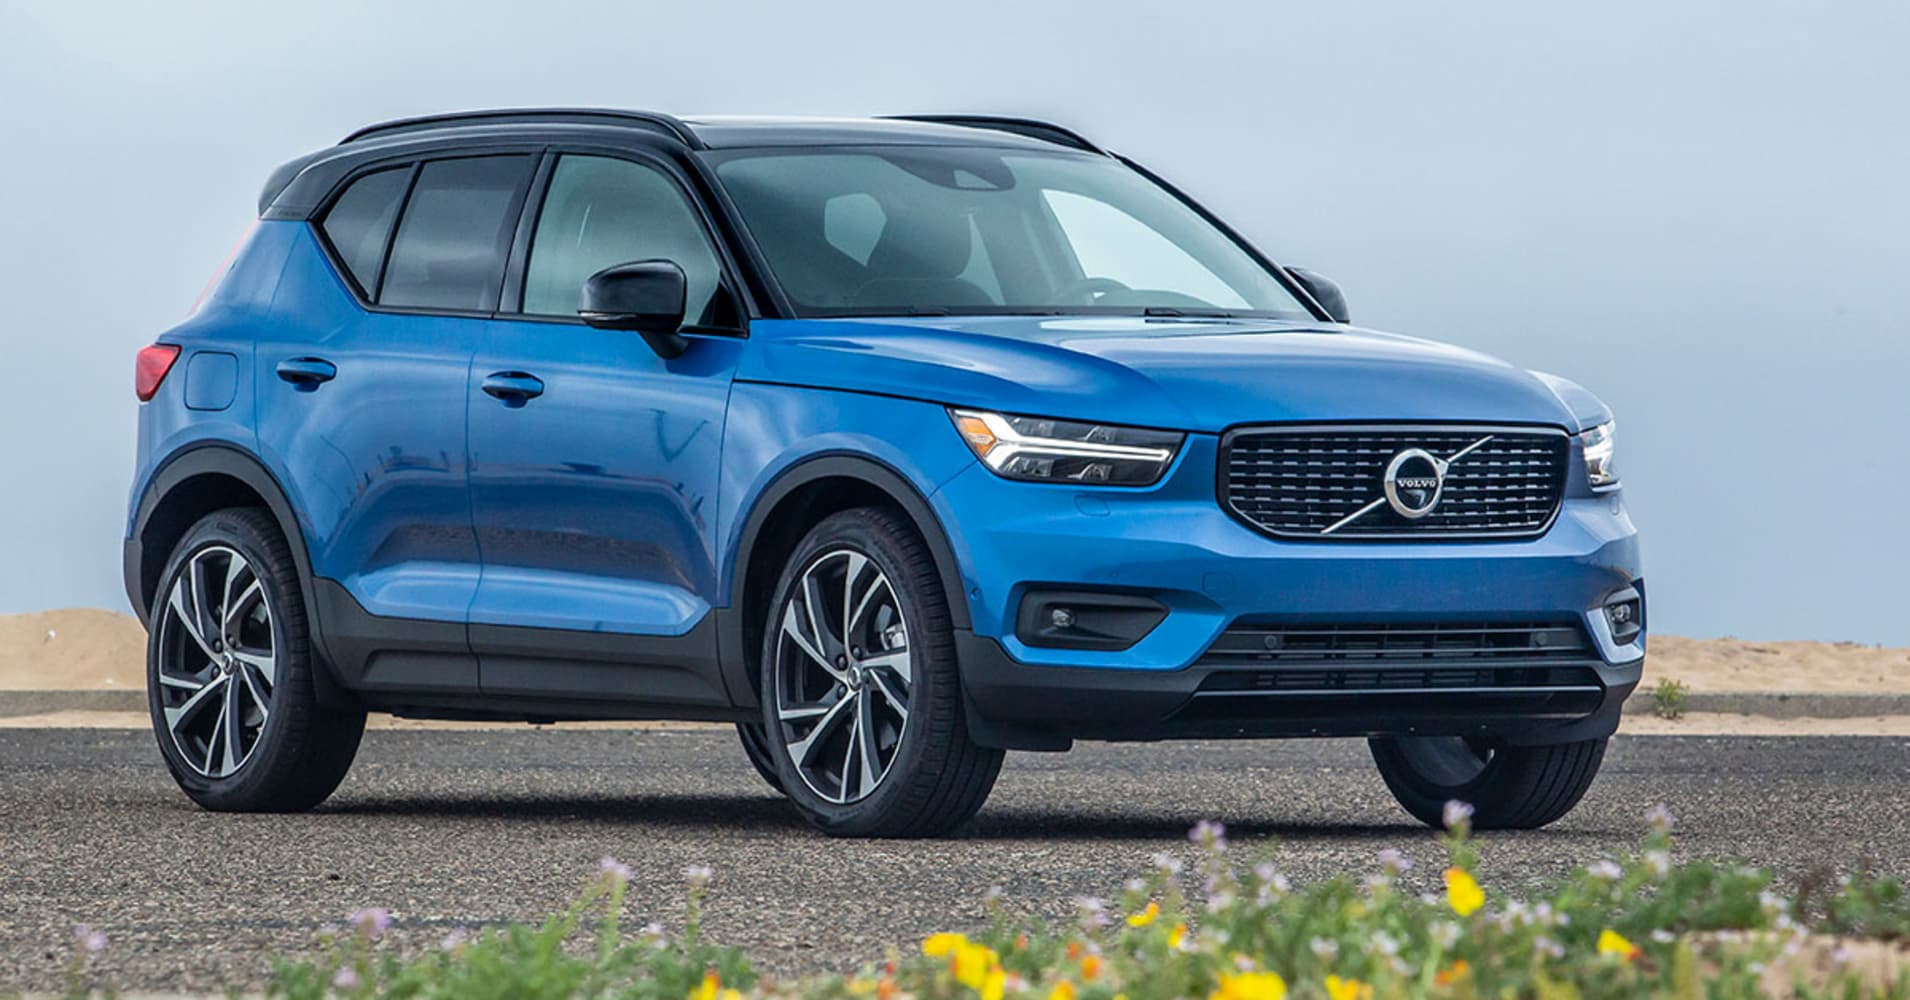 The Best 2019 Luxury Suvs Under 40 000: Kelley Blue Book Names Volvo XC40 SUV The Best New Model